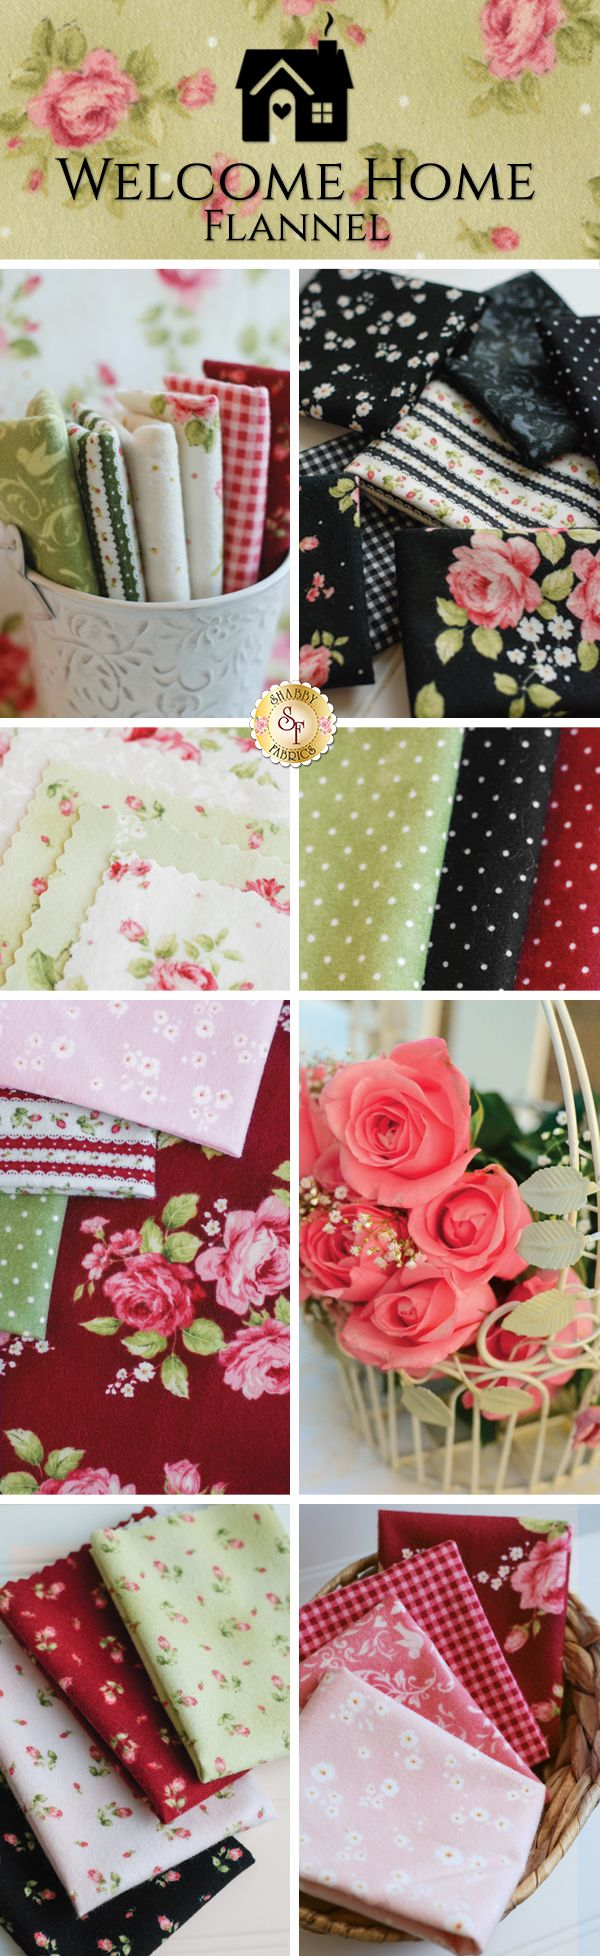 Welcome Home Flannel is a beautiful floral flannel collection by Jennifer Bosworth for Shabby Fabrics manufactured by Maywood Studio!